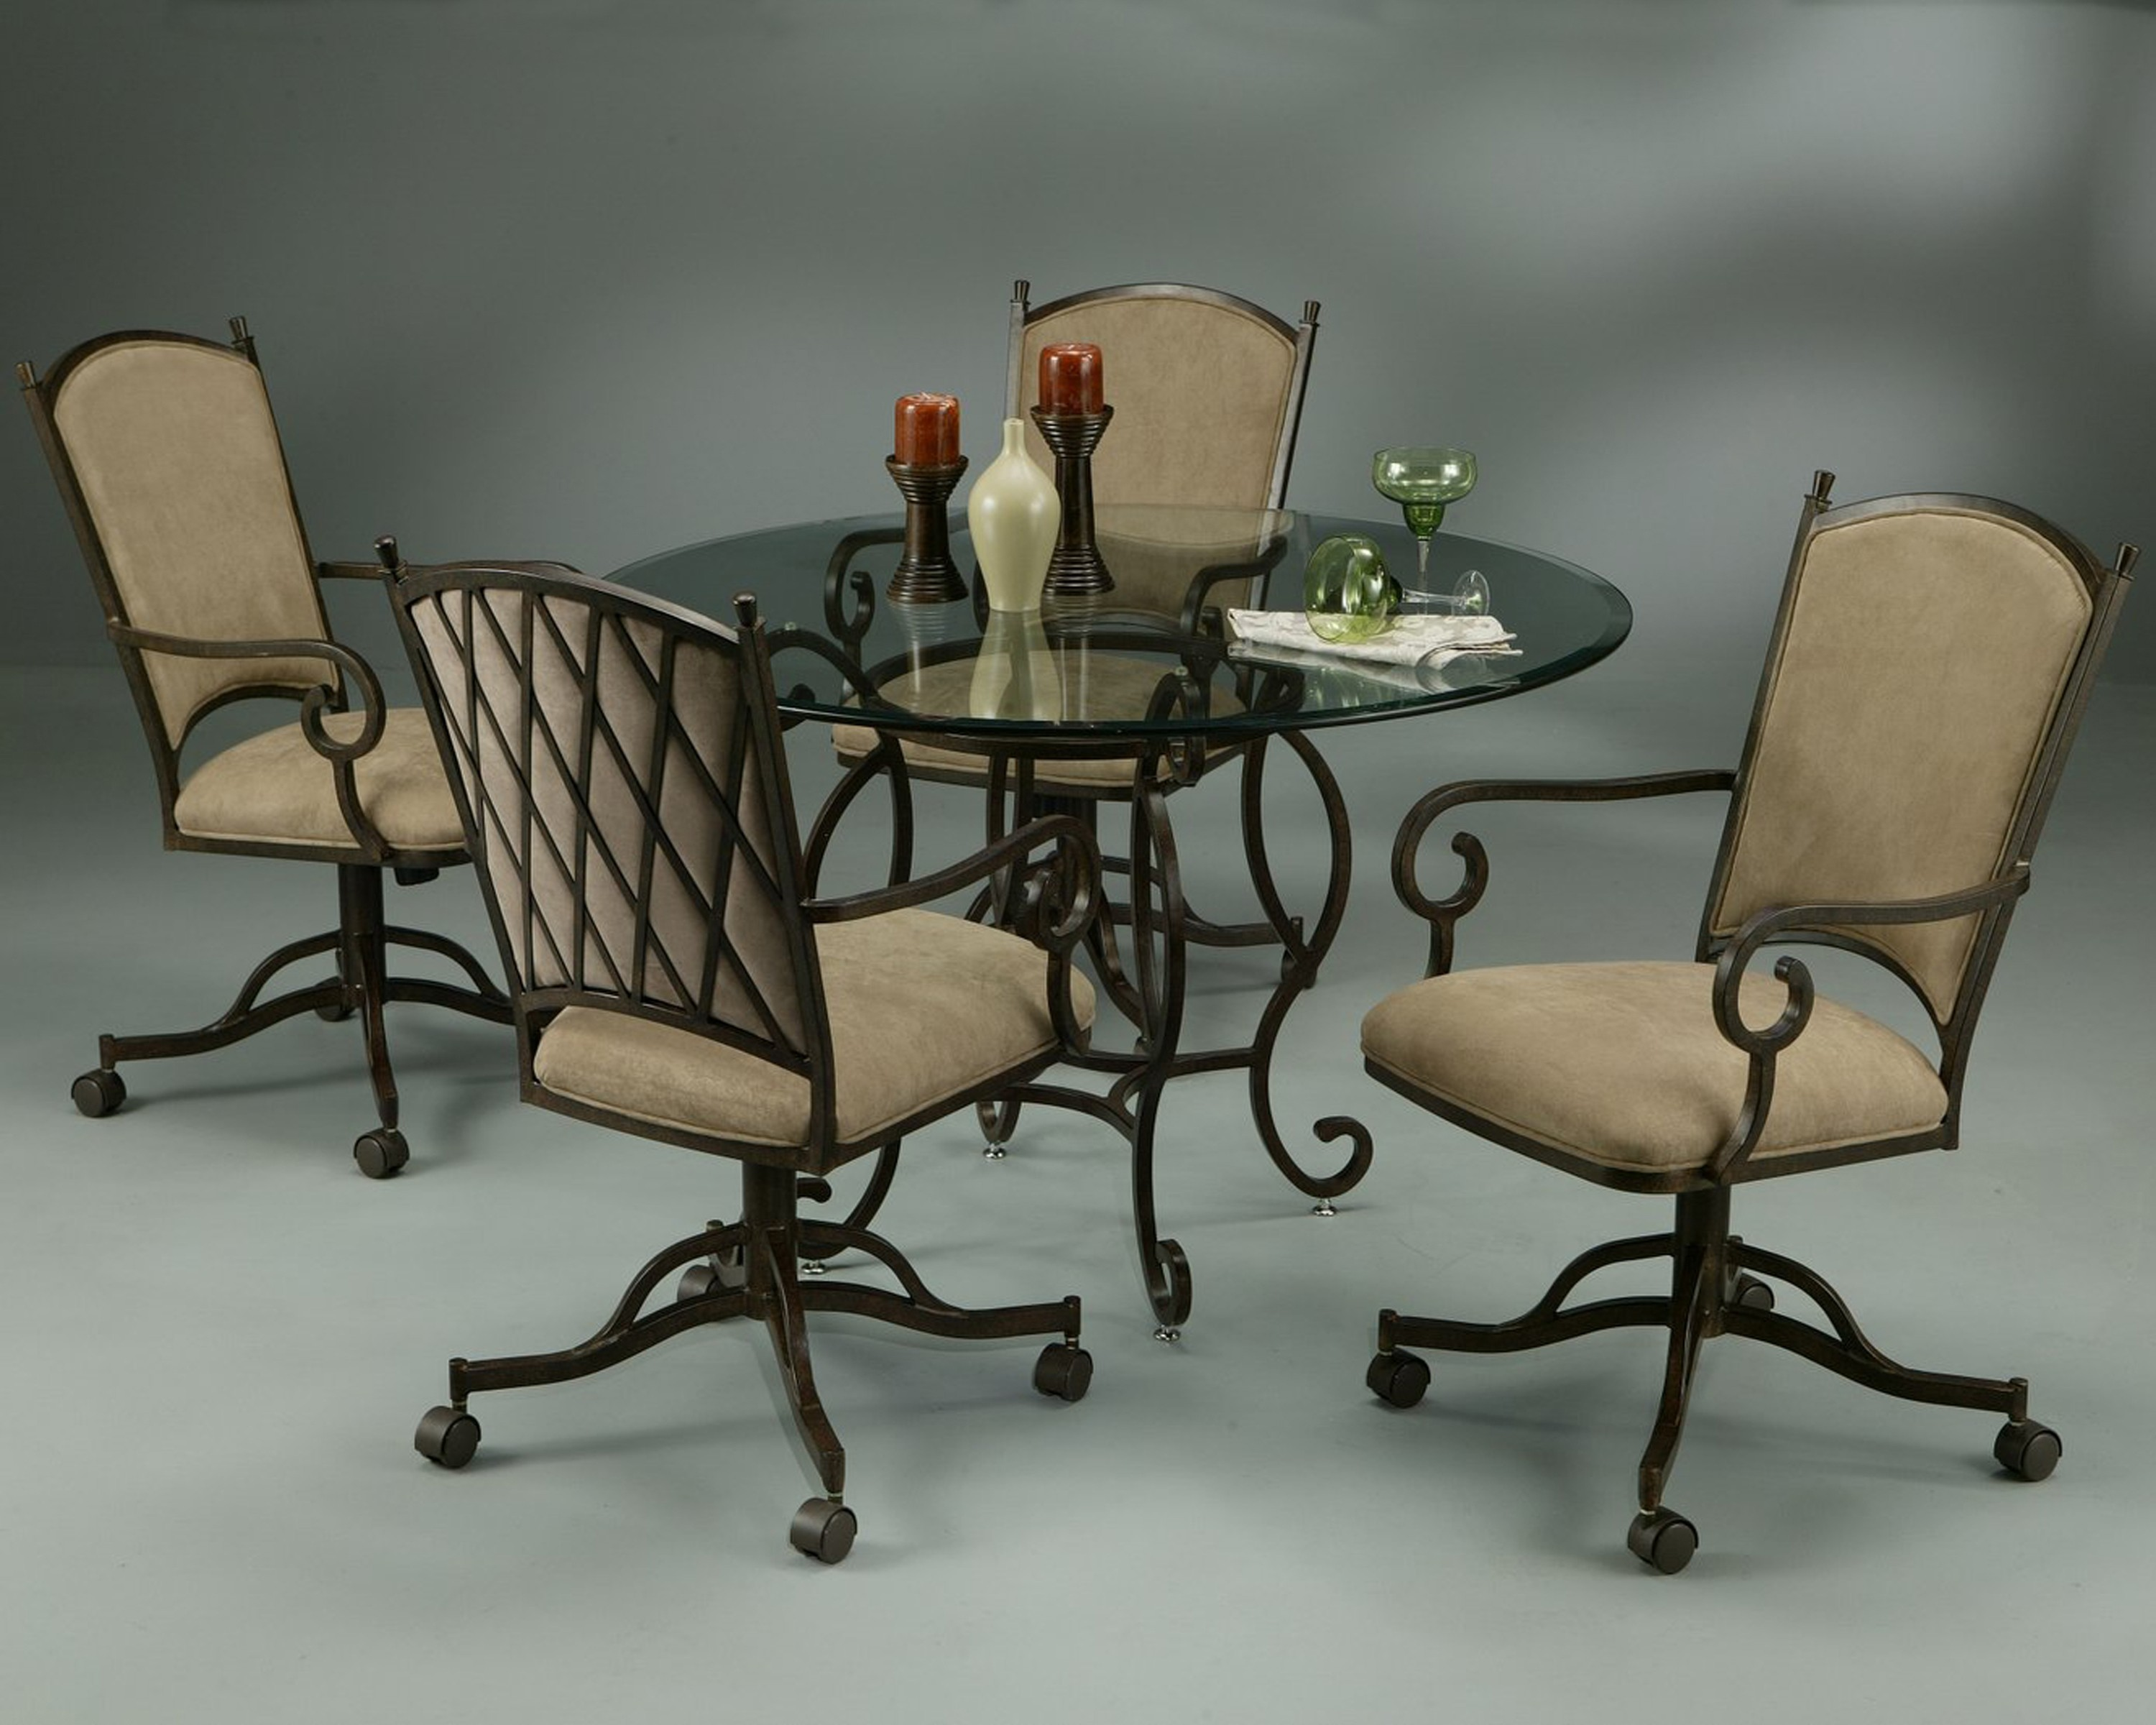 Kitchen table with rolling chairs 9